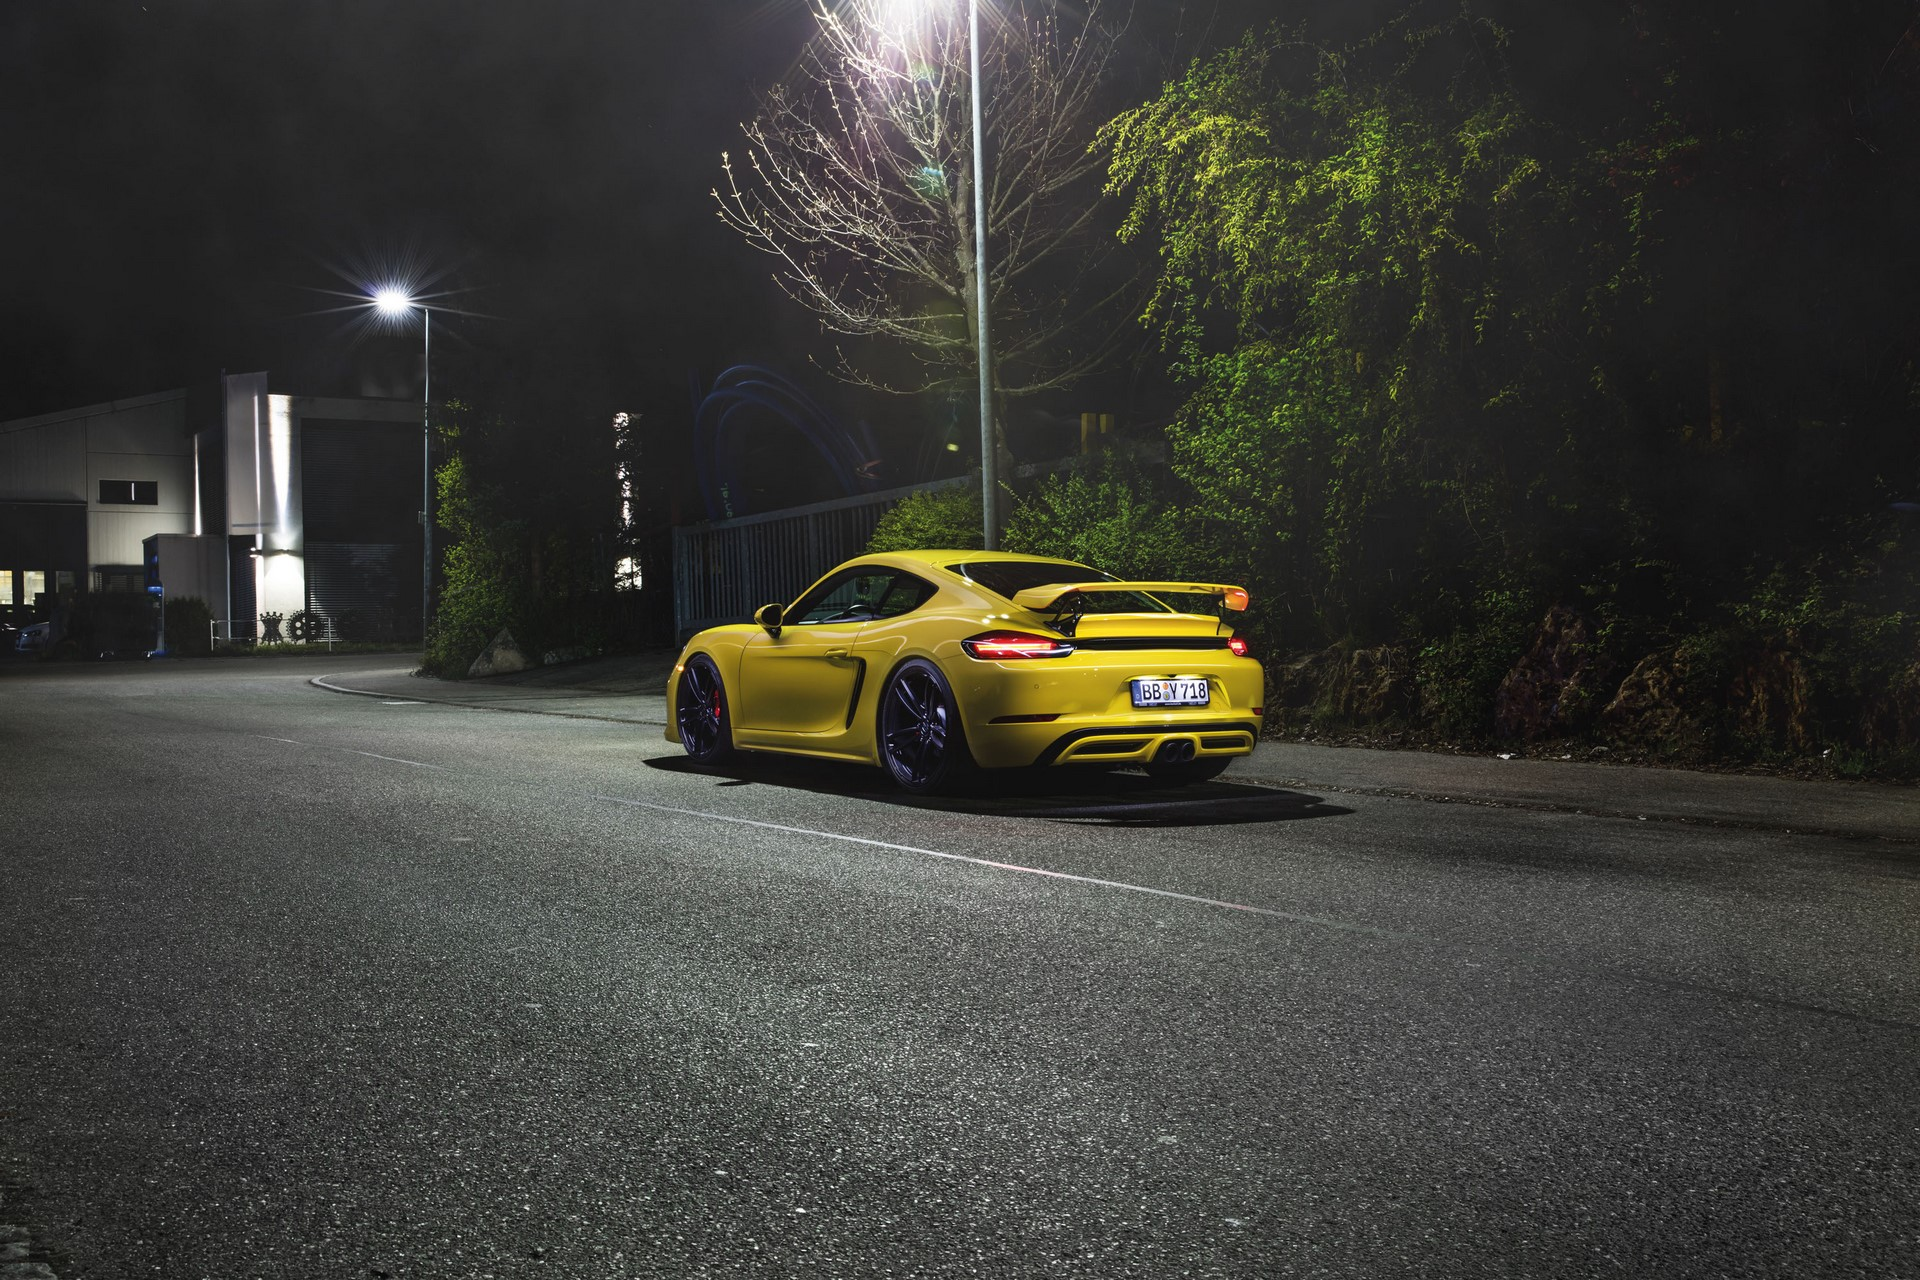 TECHART_718Cayman_ext_14